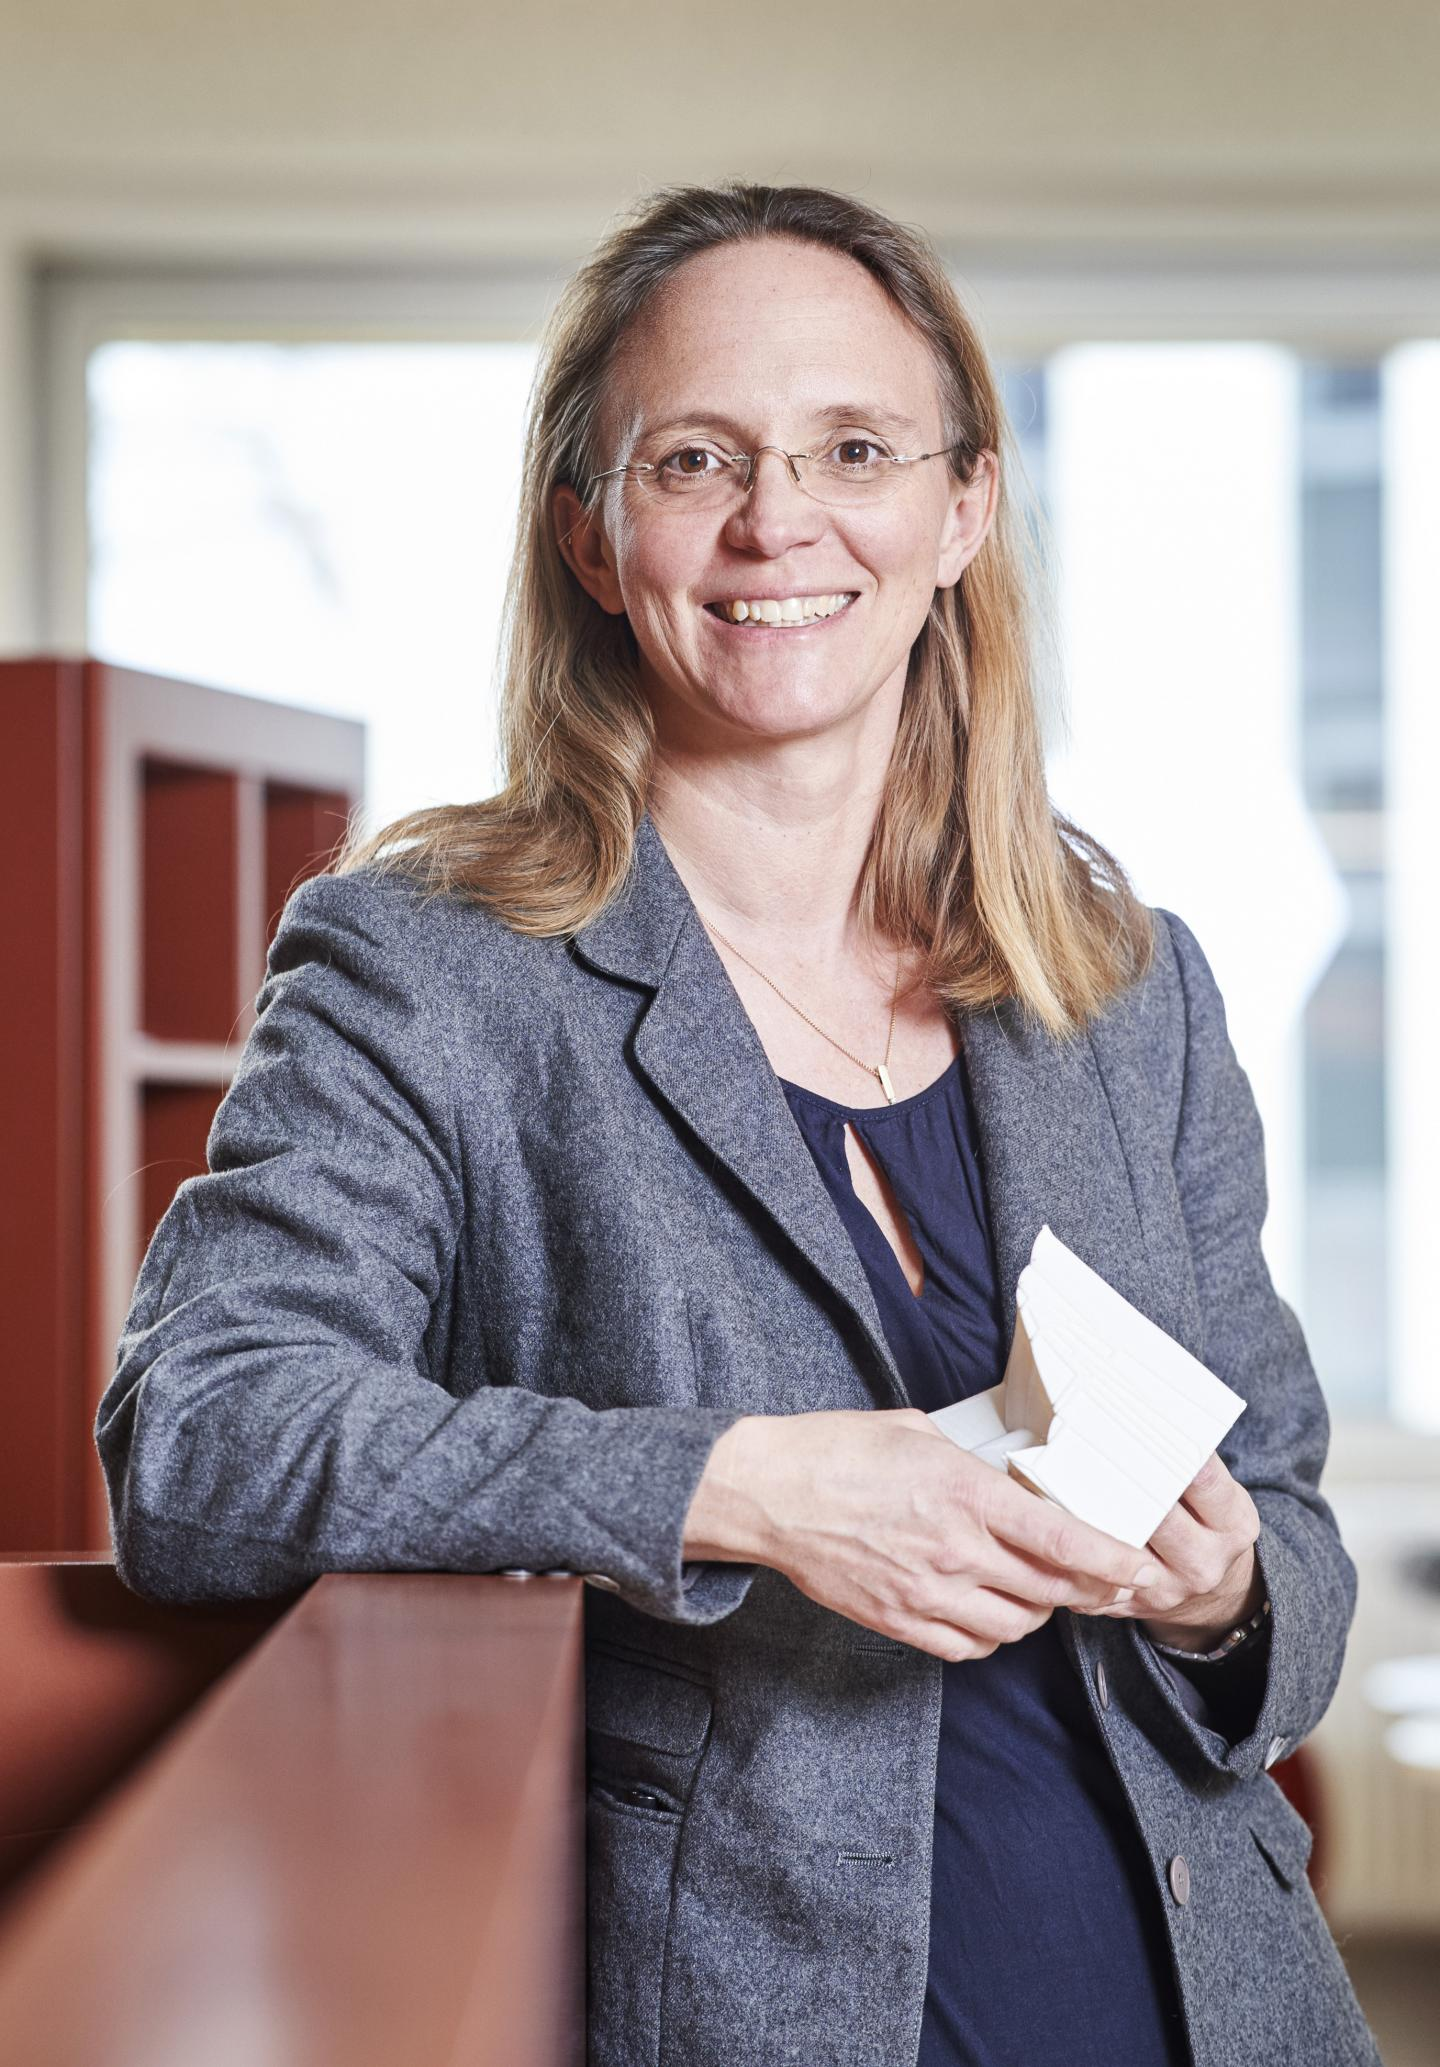 Britta Nestler, Professor for Micro-structure Simulations in Materials Technology at KIT